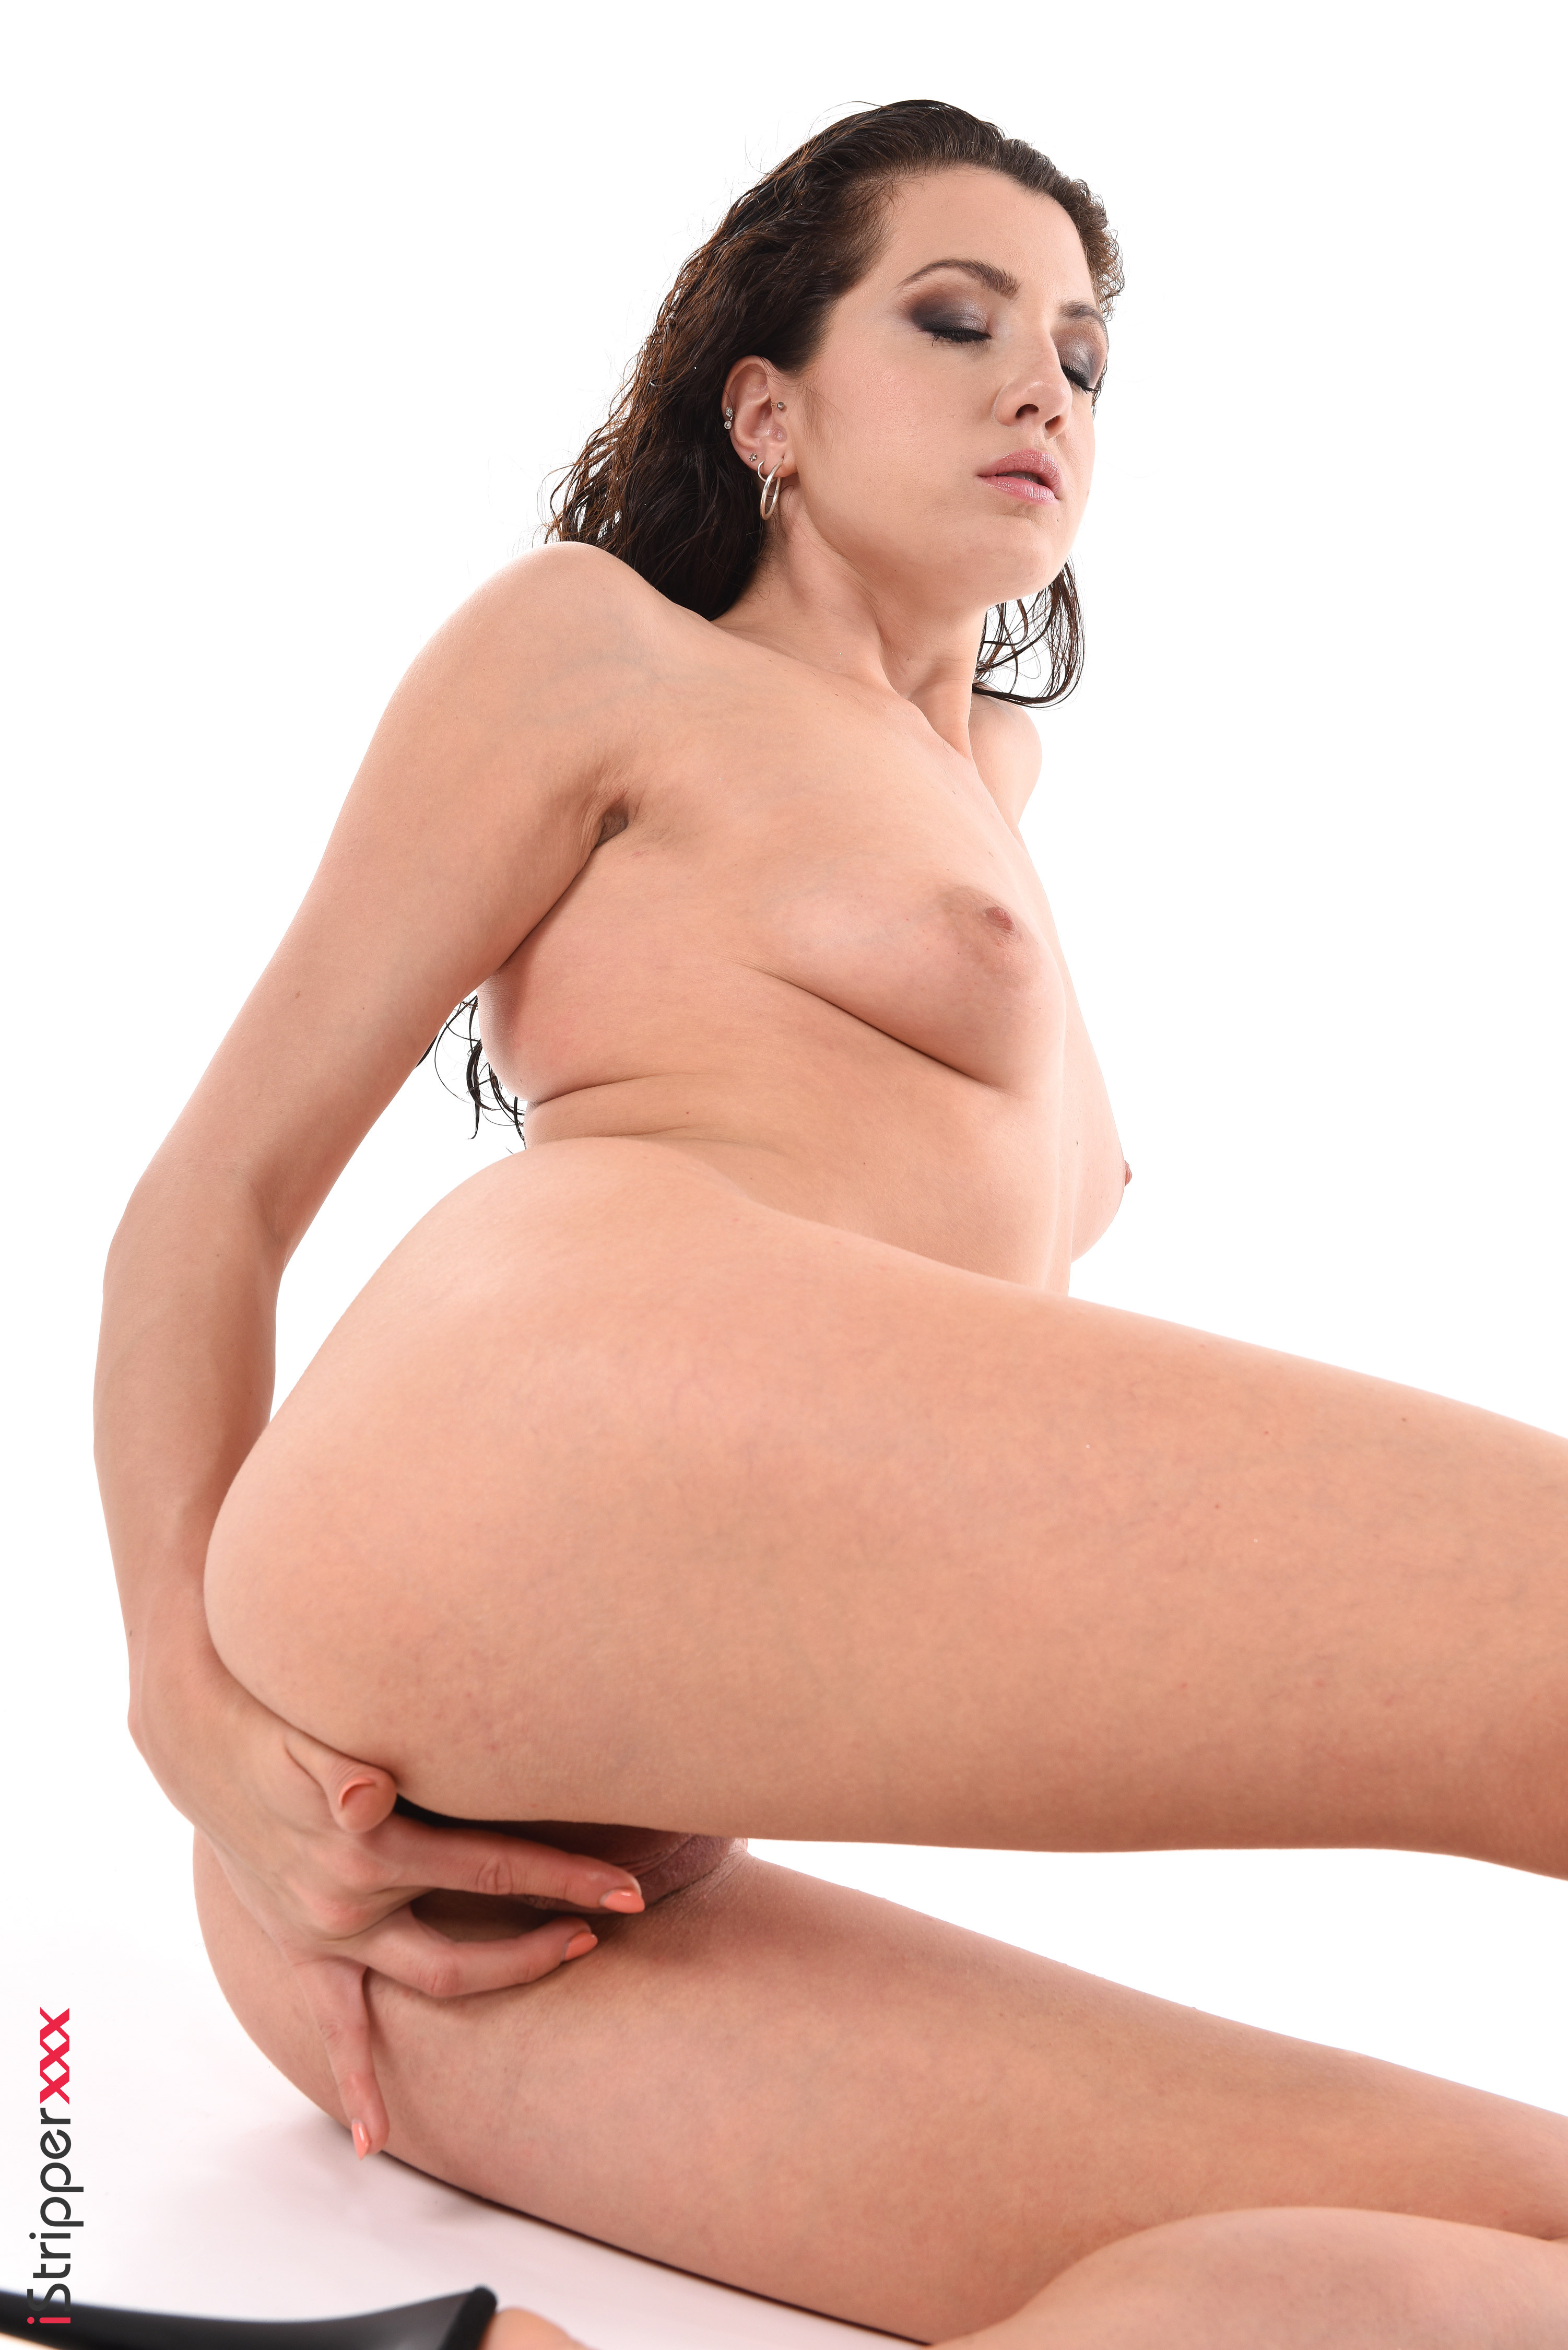 free naked girl wallpapers